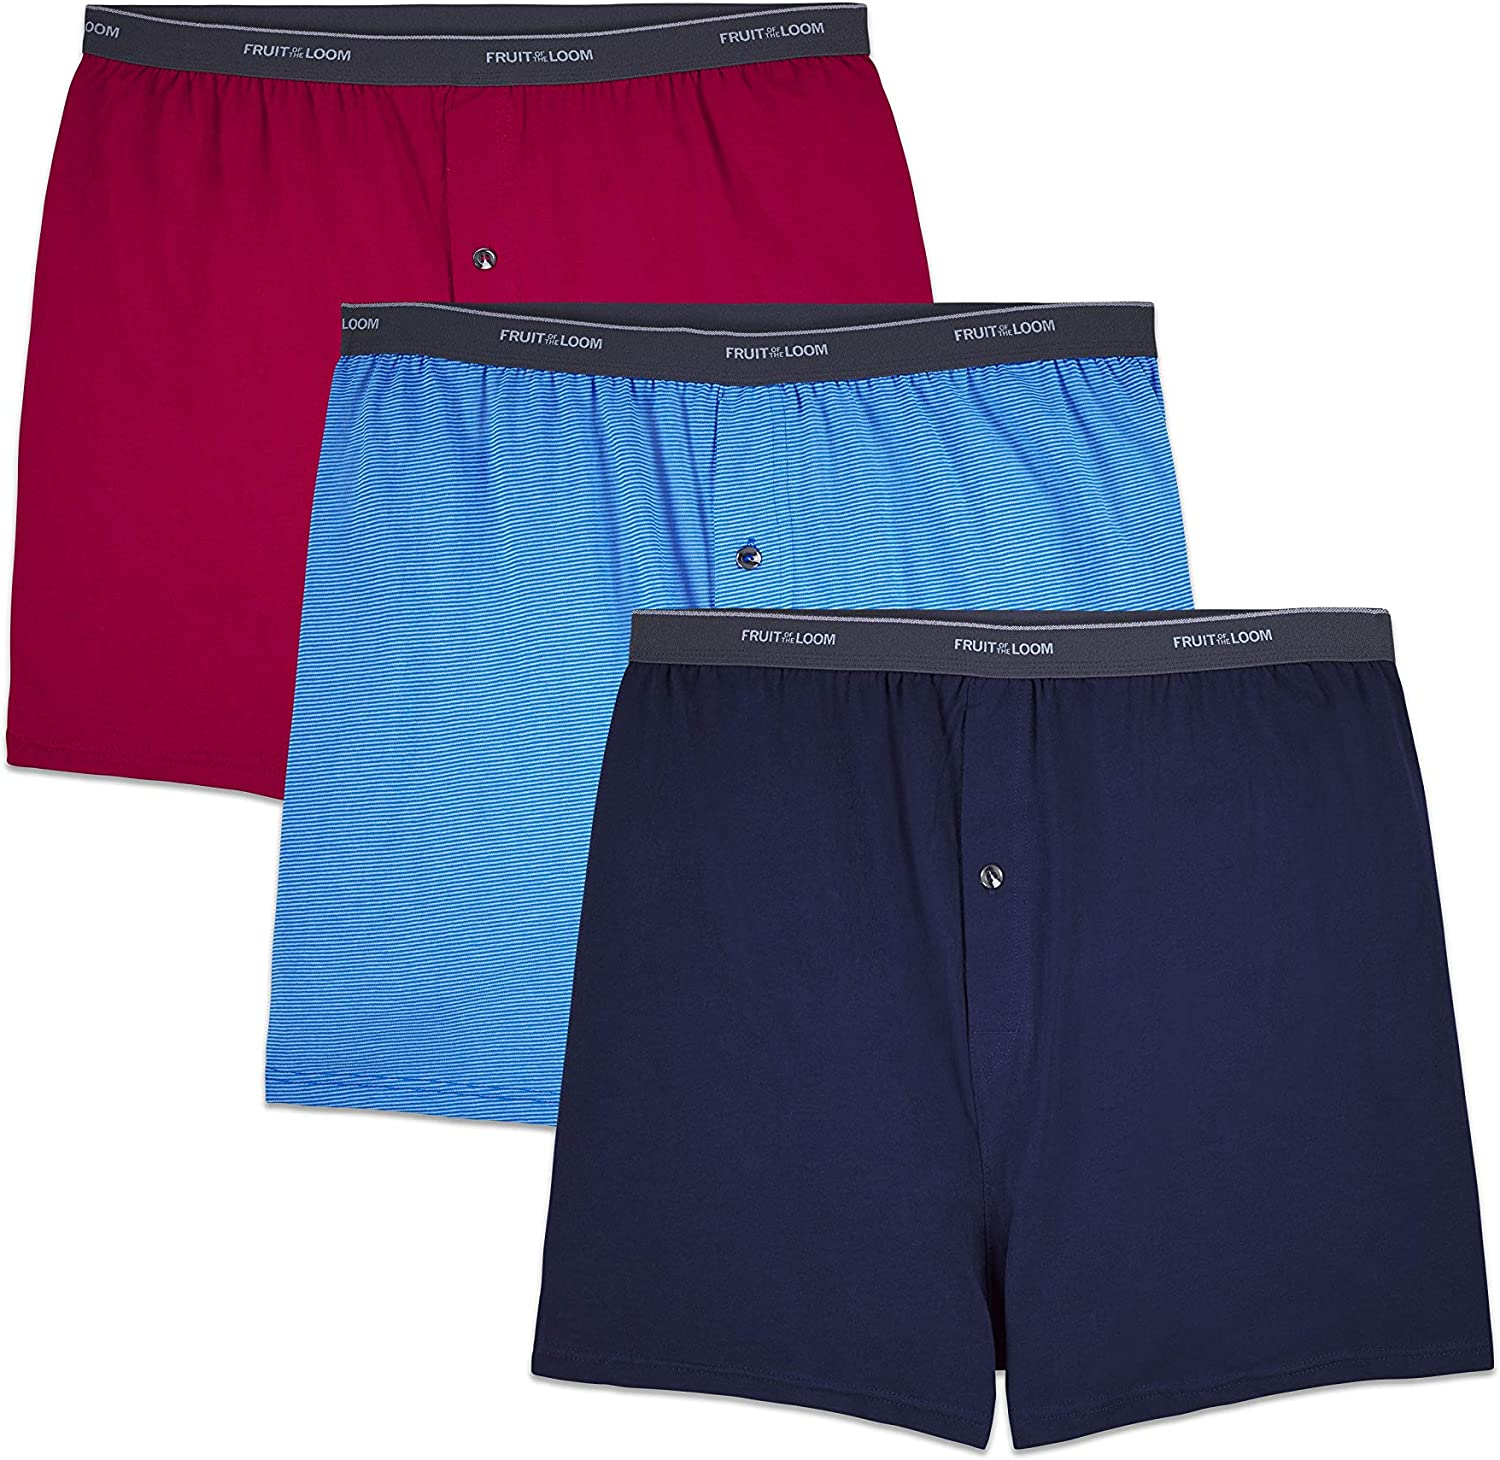 Fruit of the Loom Men's Big and Tall Tag-Free Underwear & Undershirts